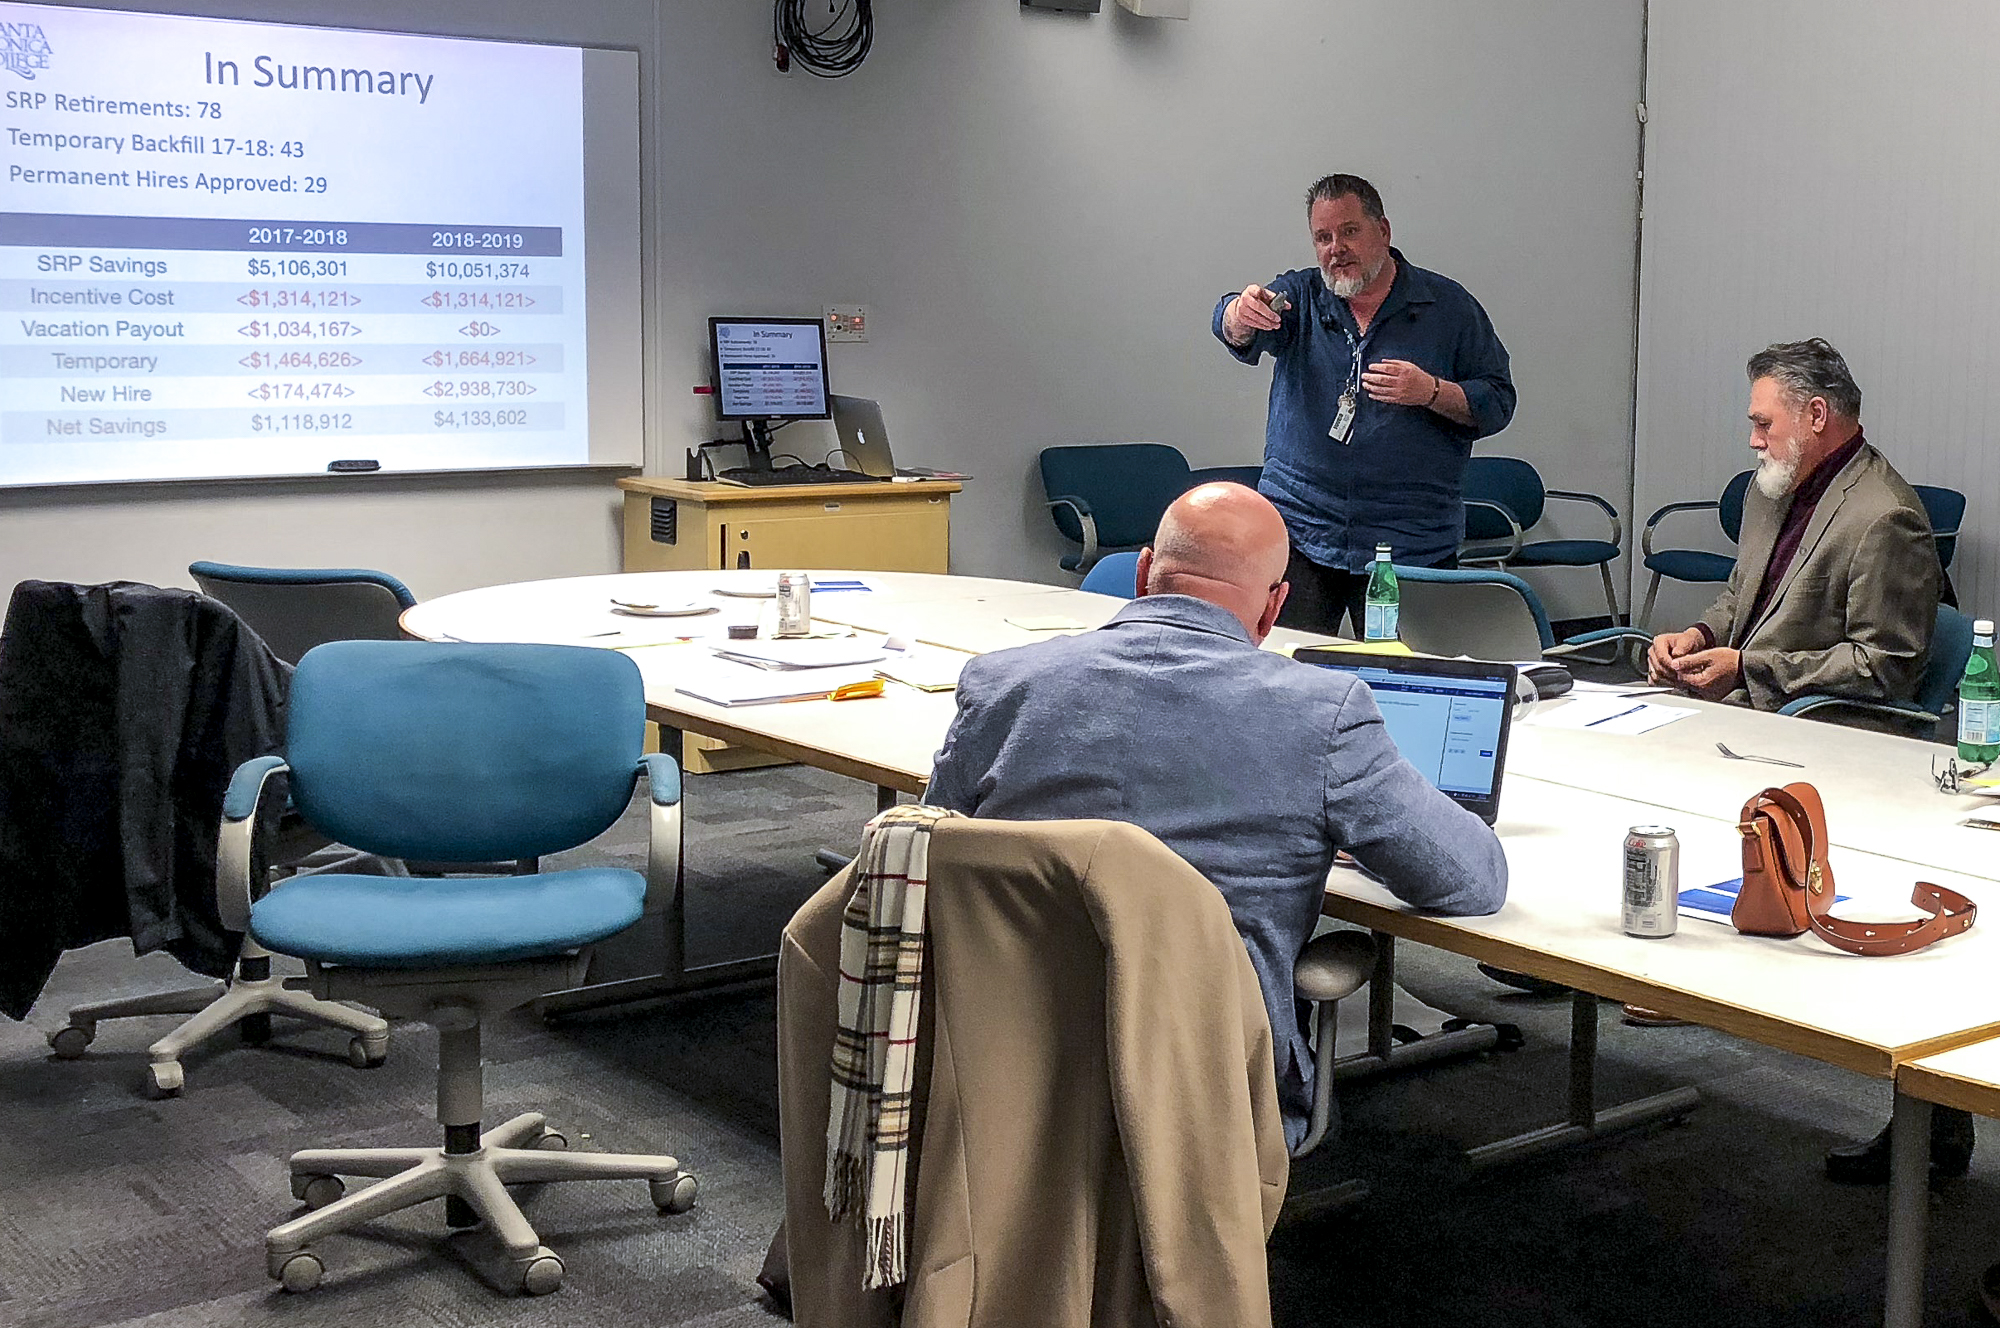 Chris Bonvenuto, director of fiscal services at Santa Monica College, presents a slide show to the Board of Trustees with an update on the Supplemental Retirement Plan on March 20, 2018 at SMC in Santa Monica, California during the Board of Trustees meeting. (Ryanne Menna/Corsair Photo)